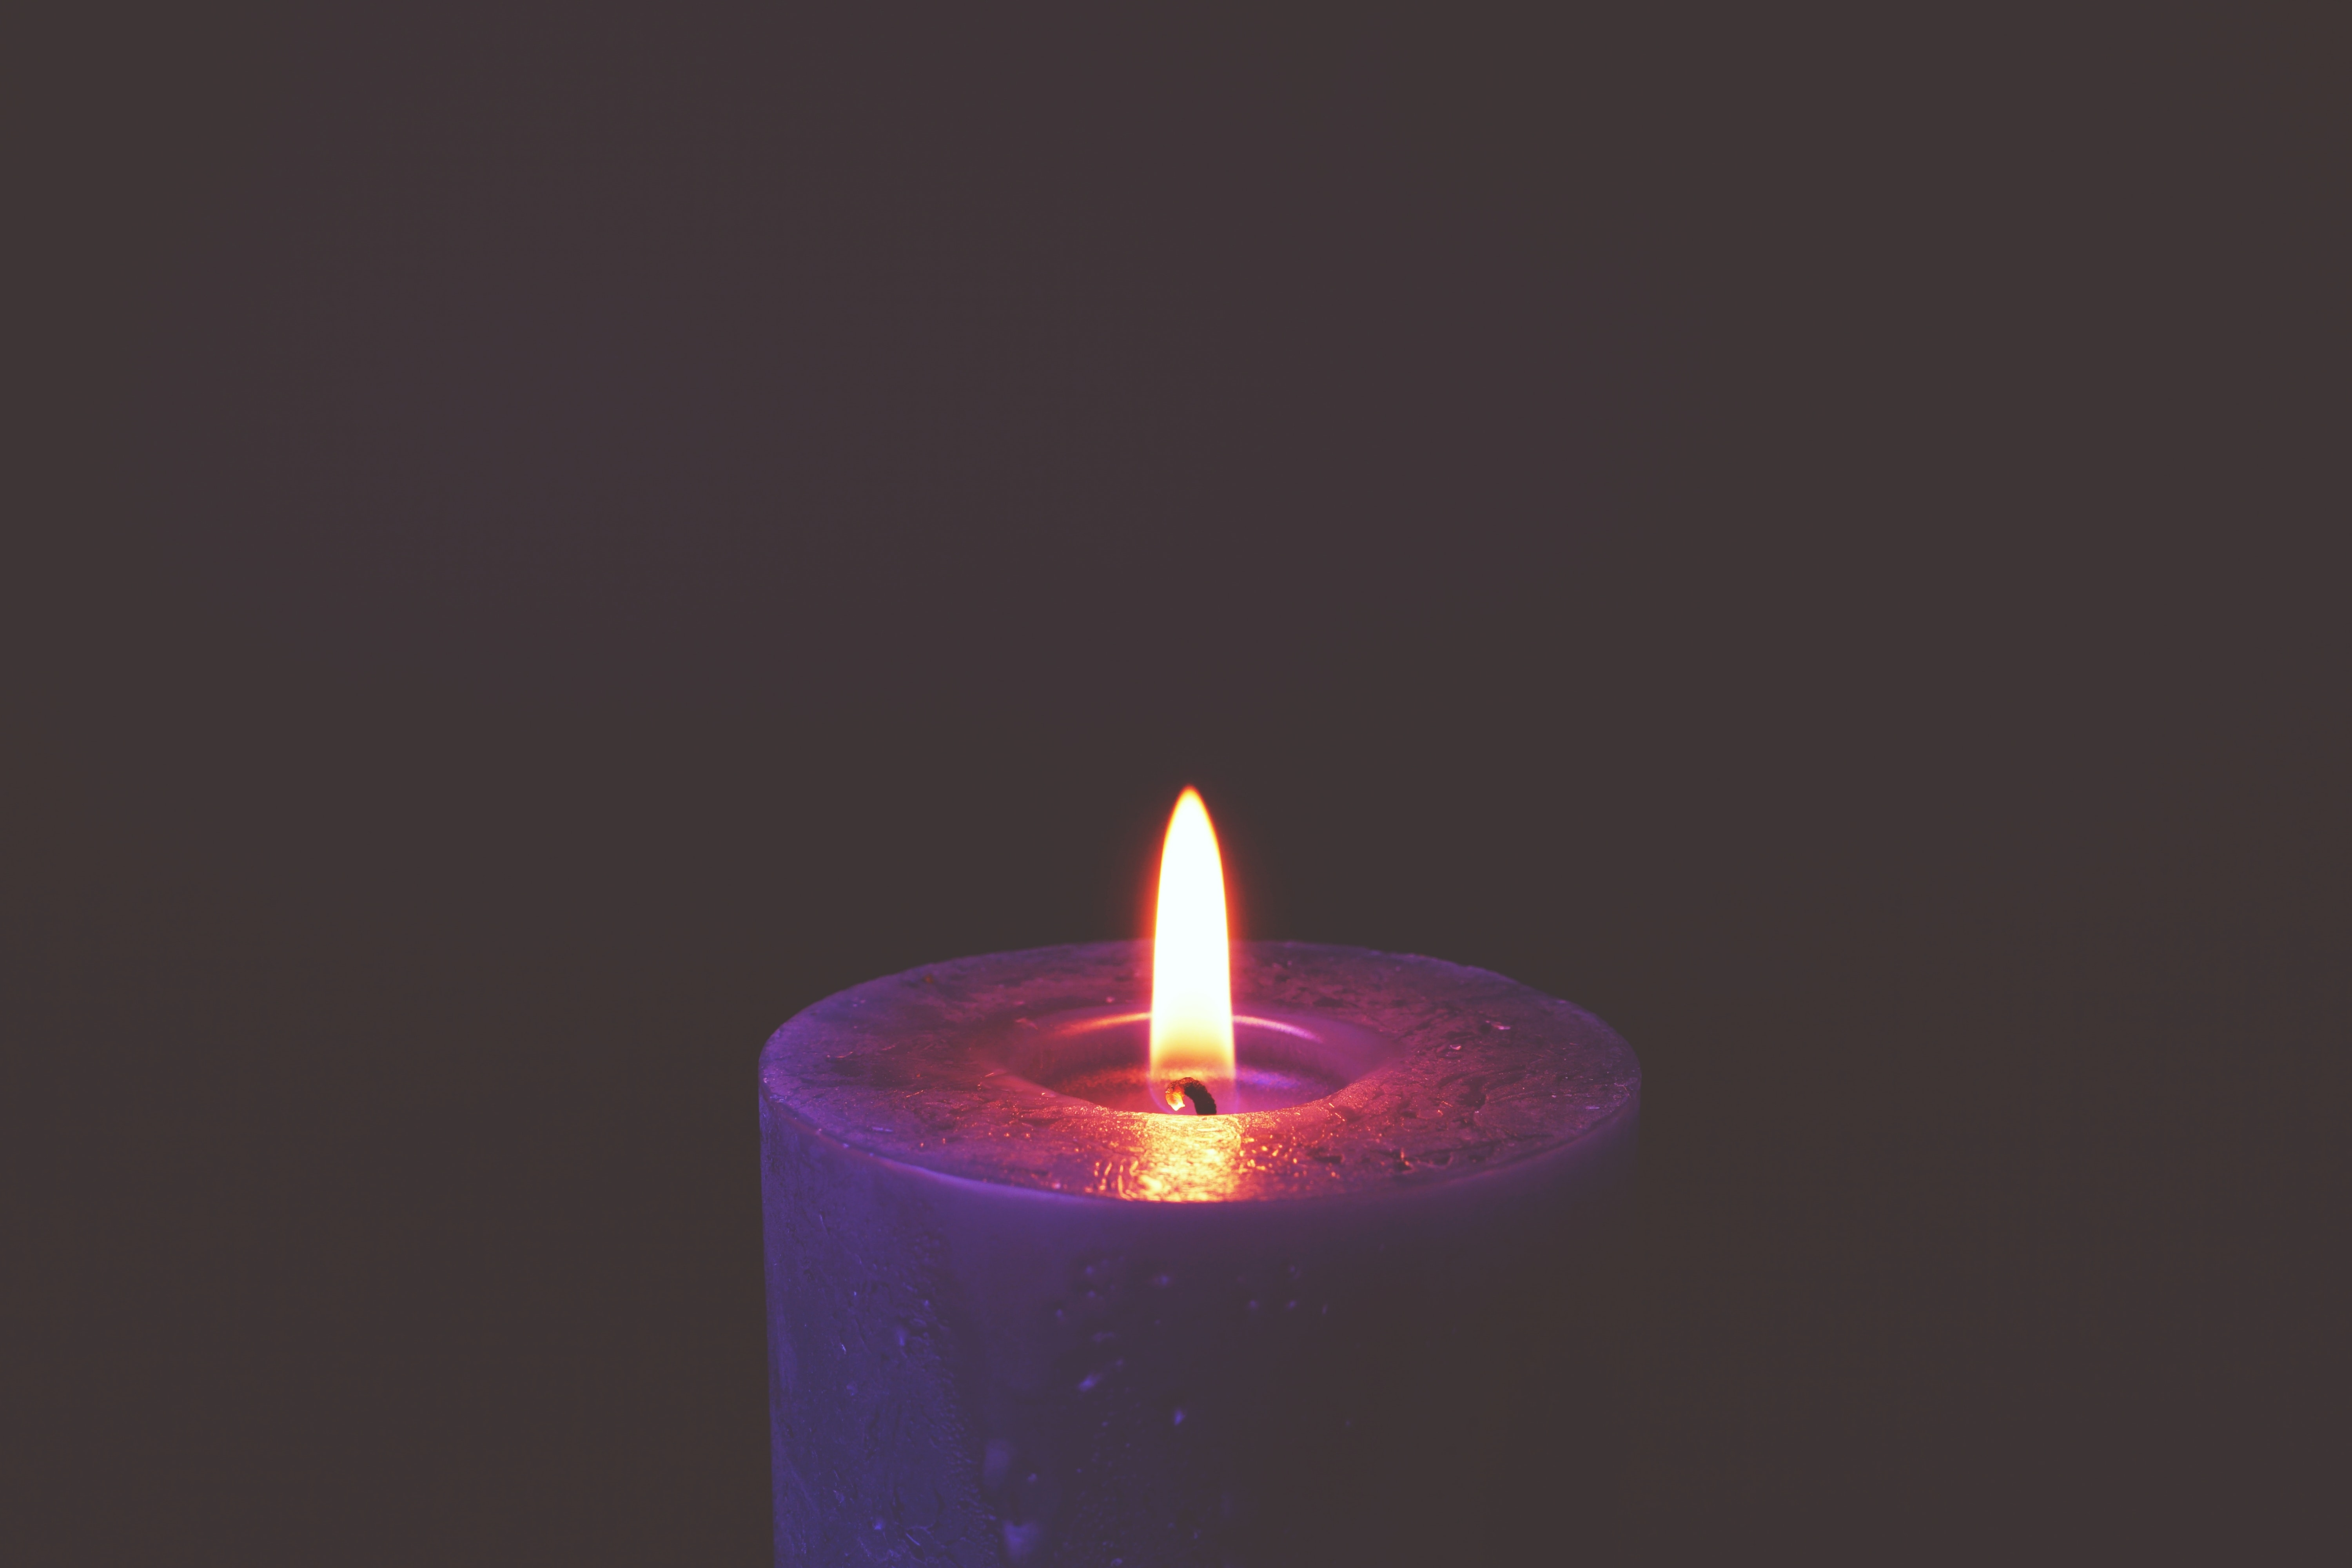 Lighted Candle Free Stock Photo